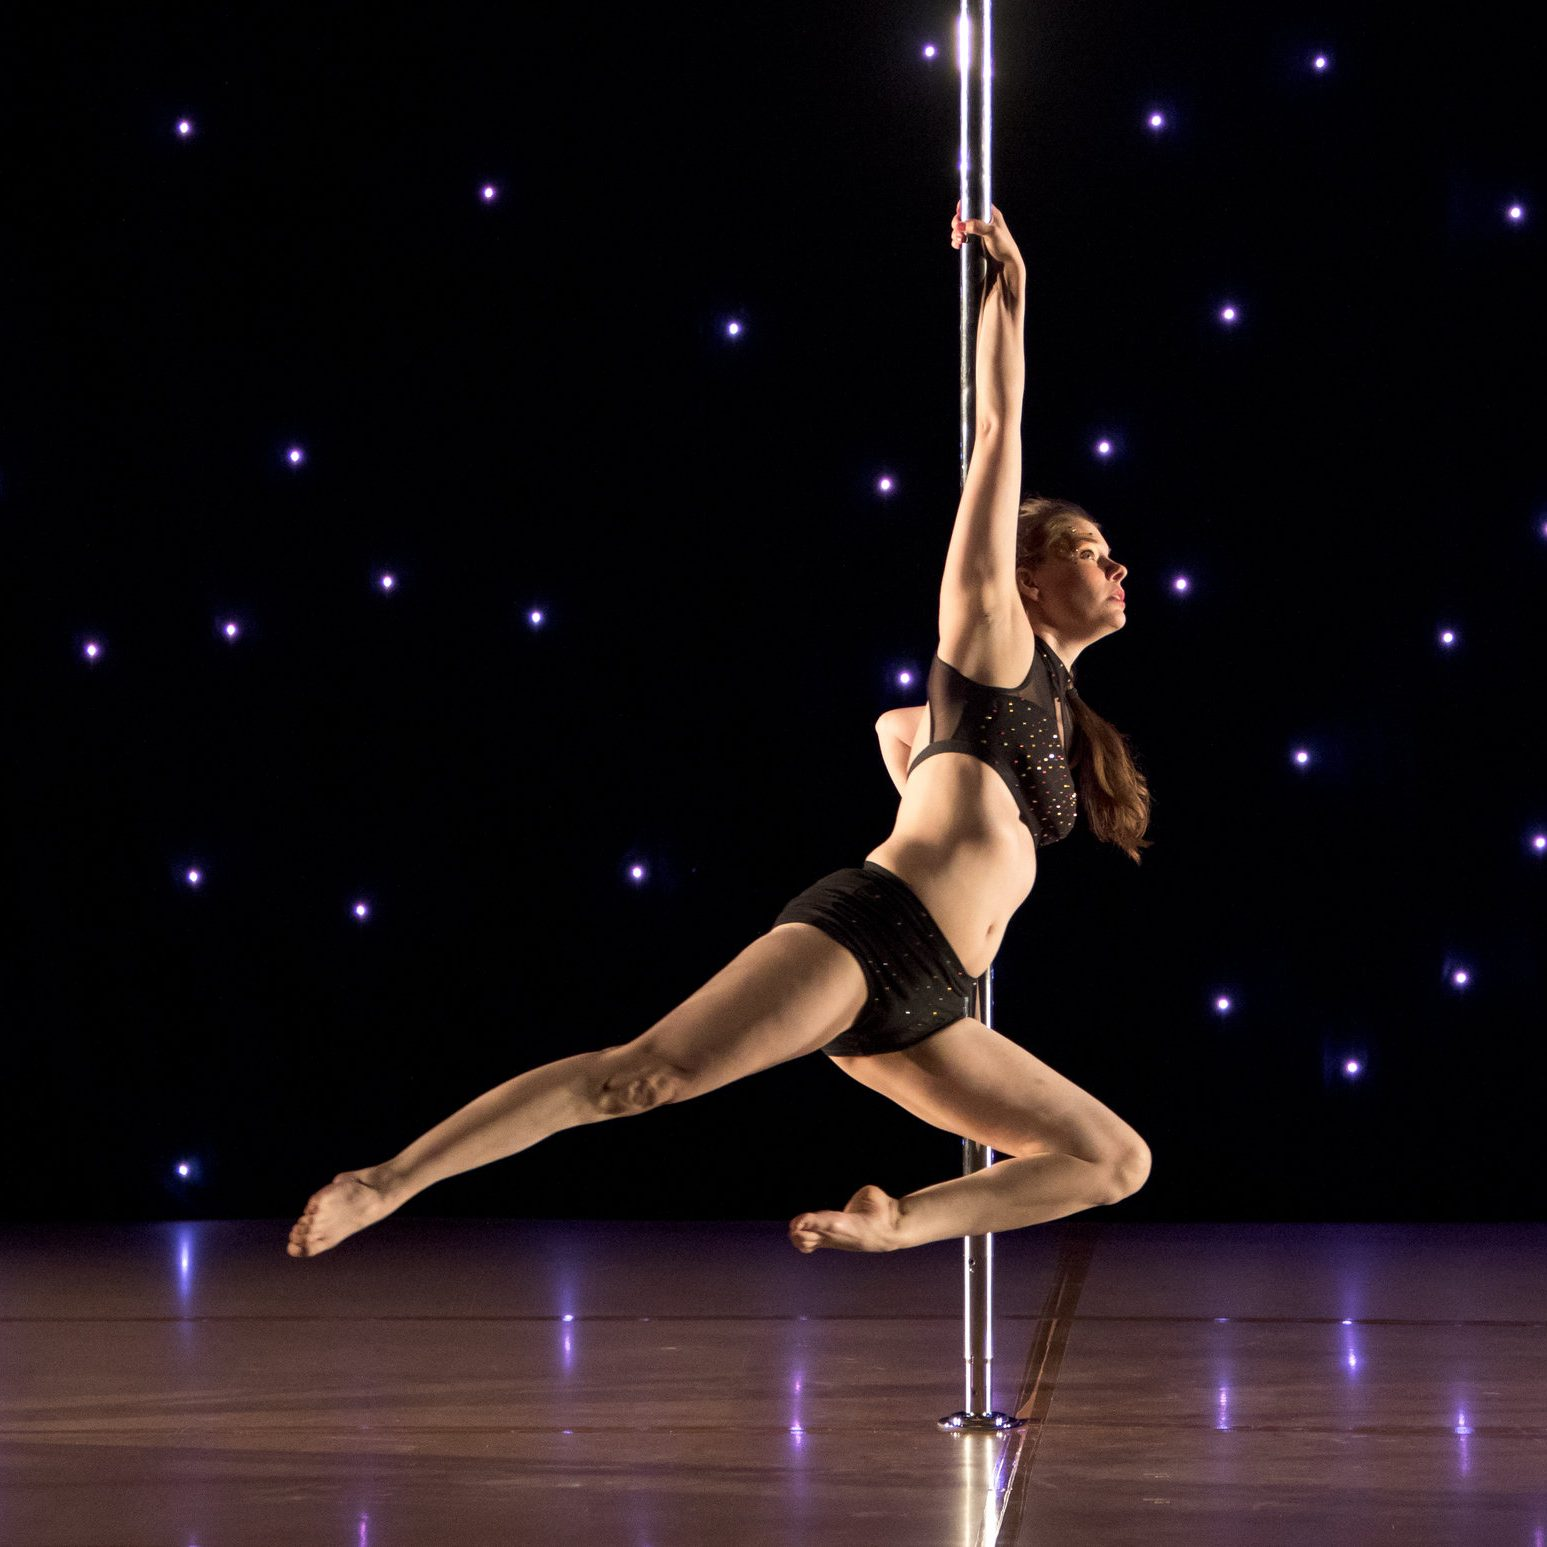 pole dancing classes in CT